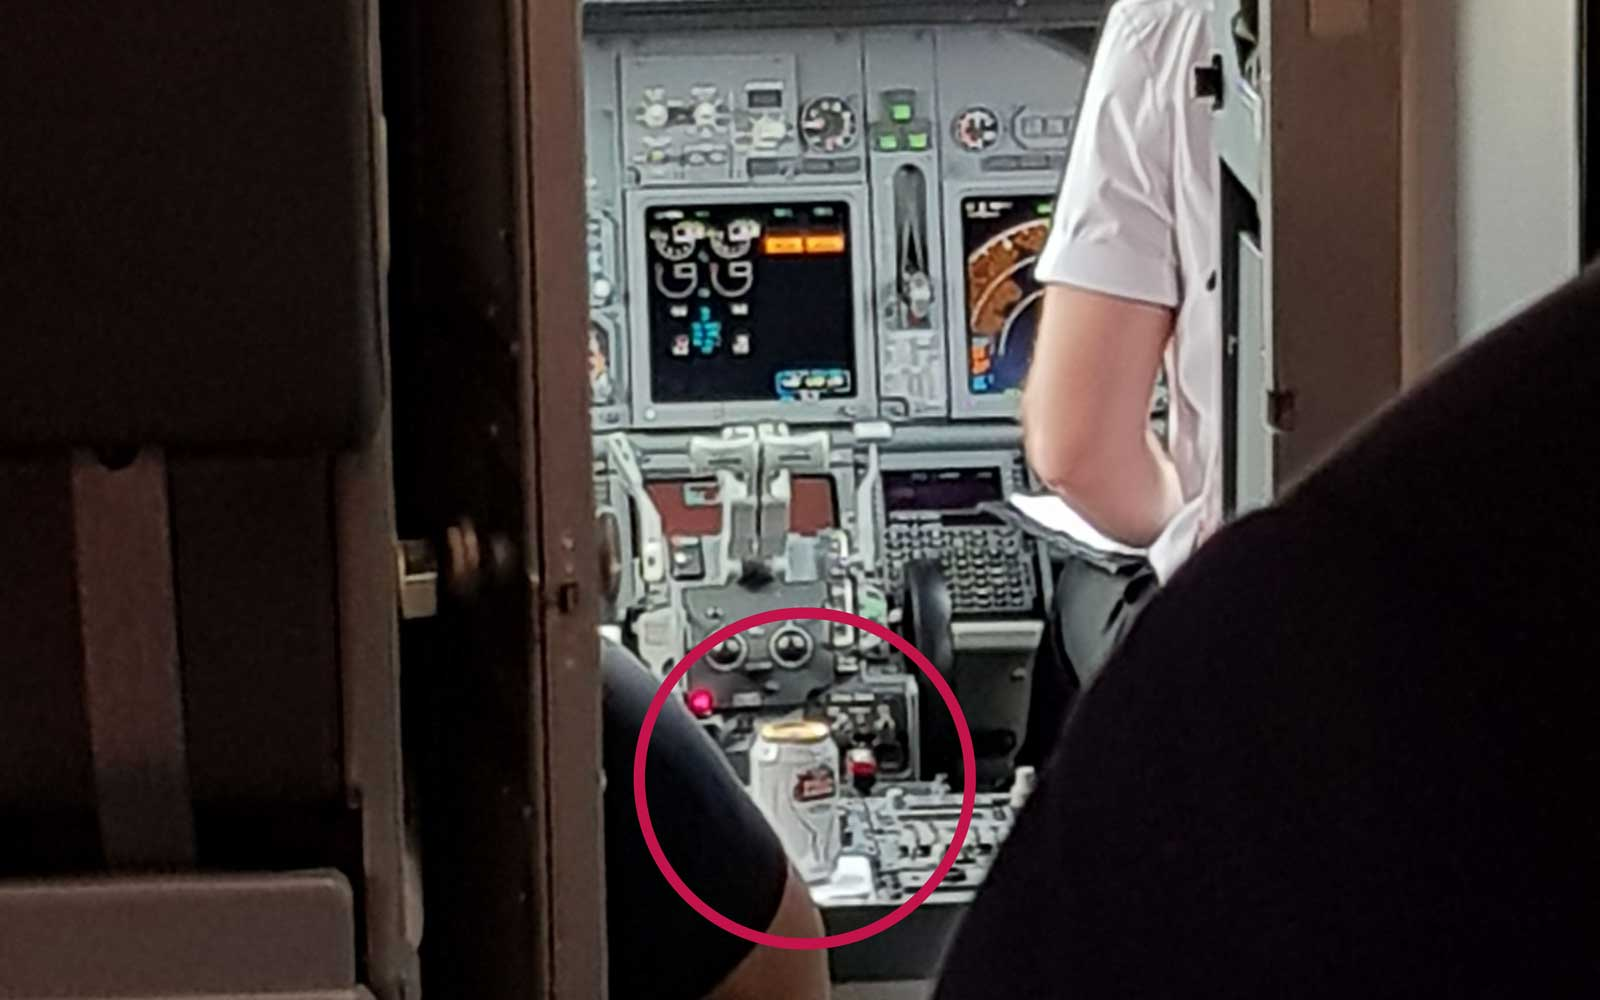 Passenger Spots a Beer Next to Pilot in Airplane's Cockpit